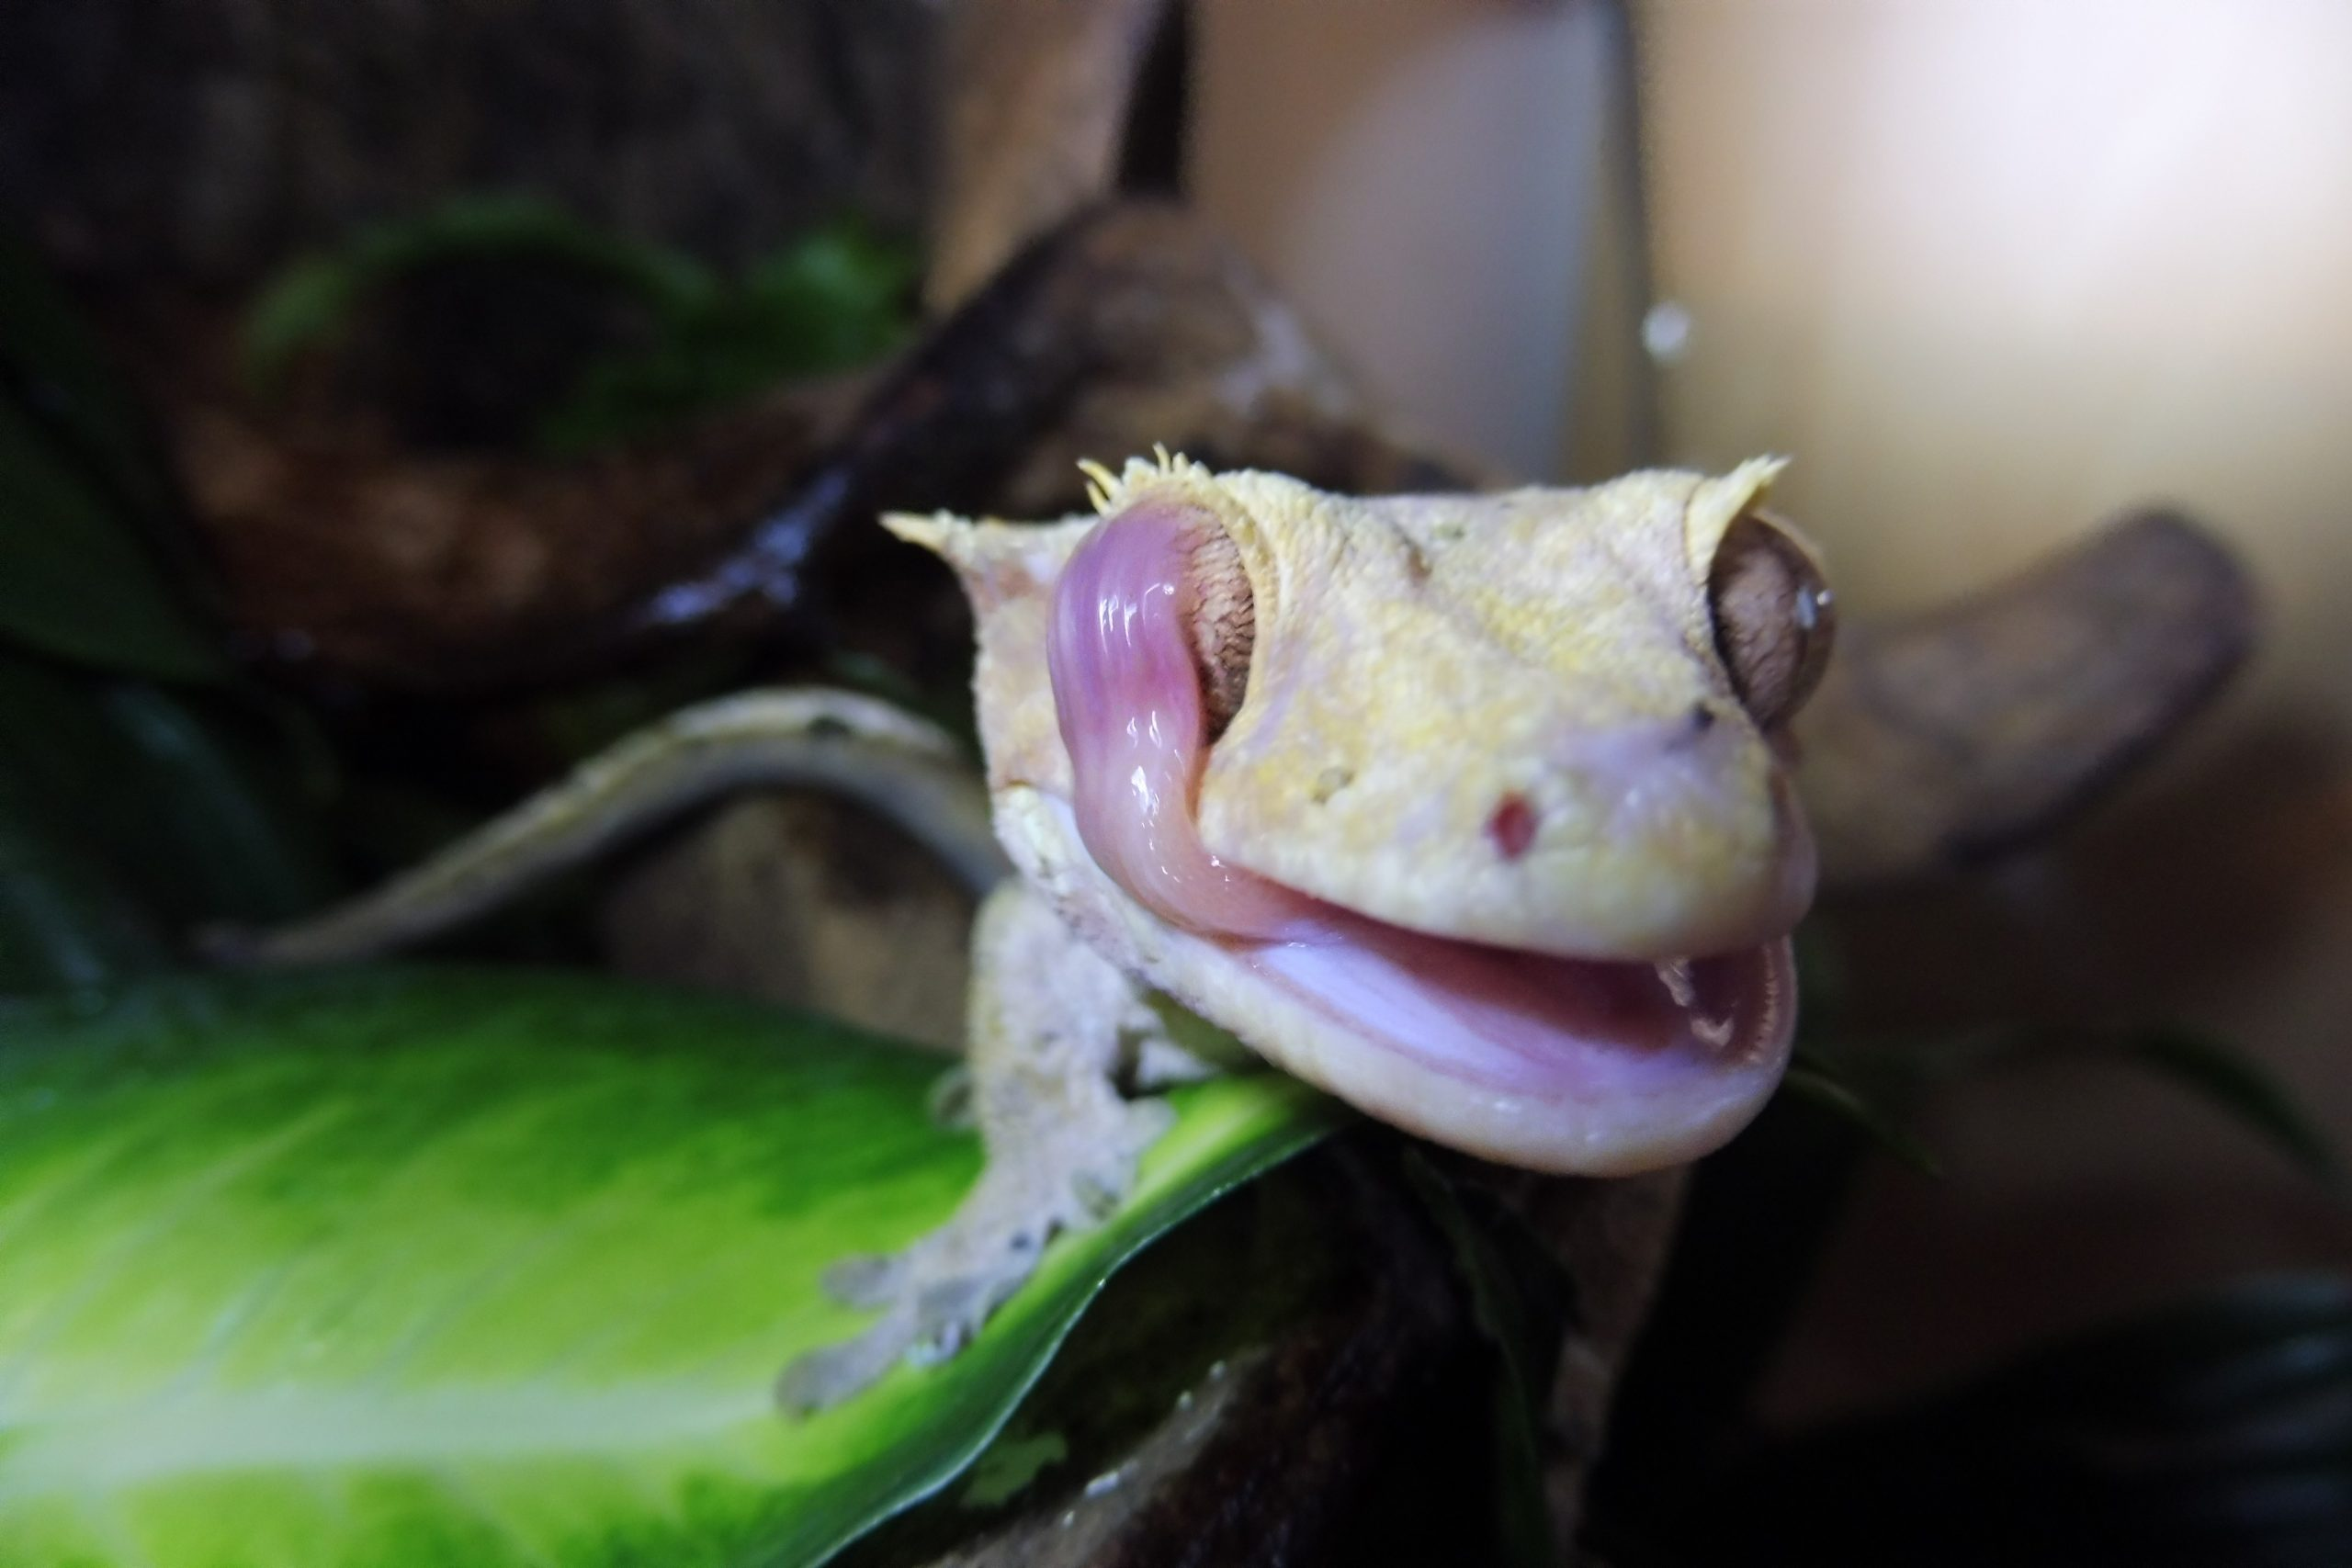 Portsmouth Reptile and Amphibian Society